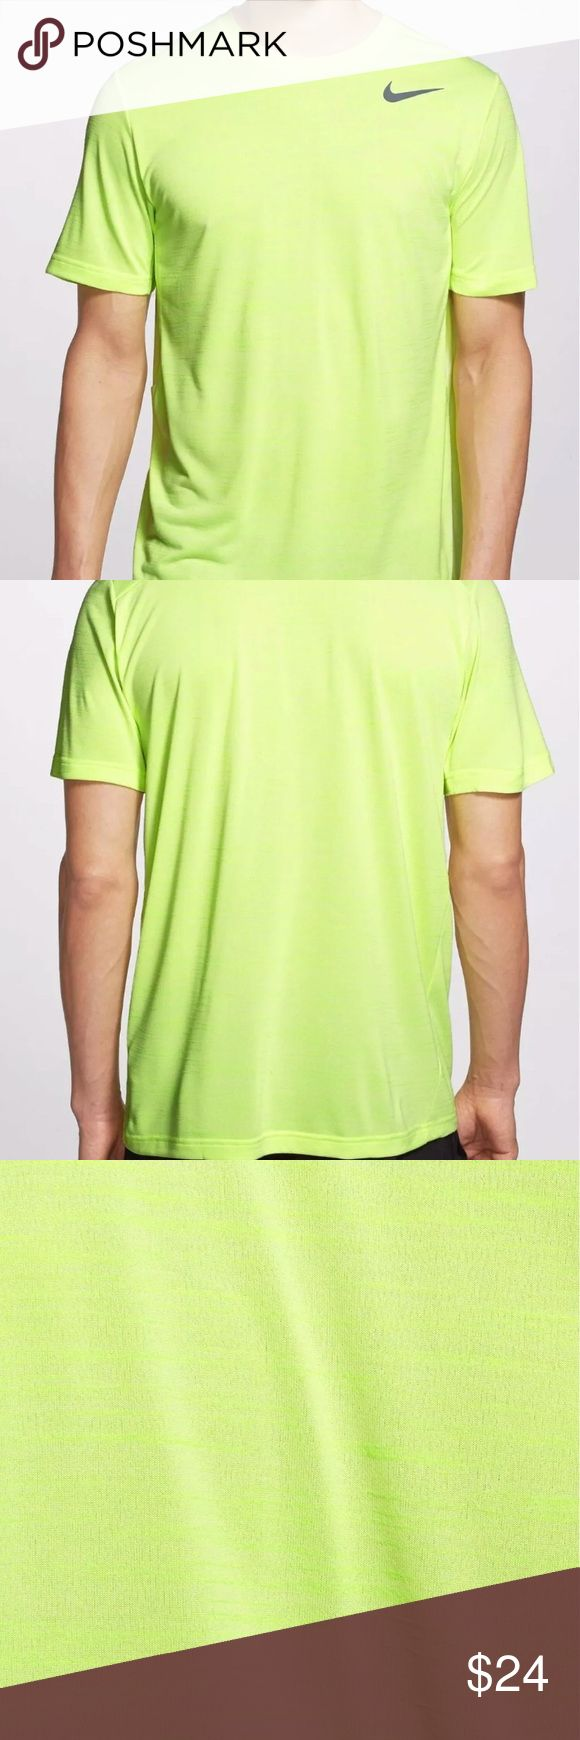 """NEW Nike DriFit """"Touch"""" Heathered  Volt Tee,NWT!!! Nike Dri-FIT Touch Ultra-Soft Men's T-Shirt Volt/Black 742228-702 Nike Dri-FIT Men's Training Short-Sleeve Shirt is easy on your skin with ultra-soft fabric that keeps you pushing the limit in lightweight comfort.  •Dri-FIT fabric helps keep you dry and comfortable •Six-panel design with interior taping for a comfortable fit •Embroidered eyelets and perforations for breathability •Adjustable strap for custom fit •Fabric: Dri-FIT…"""